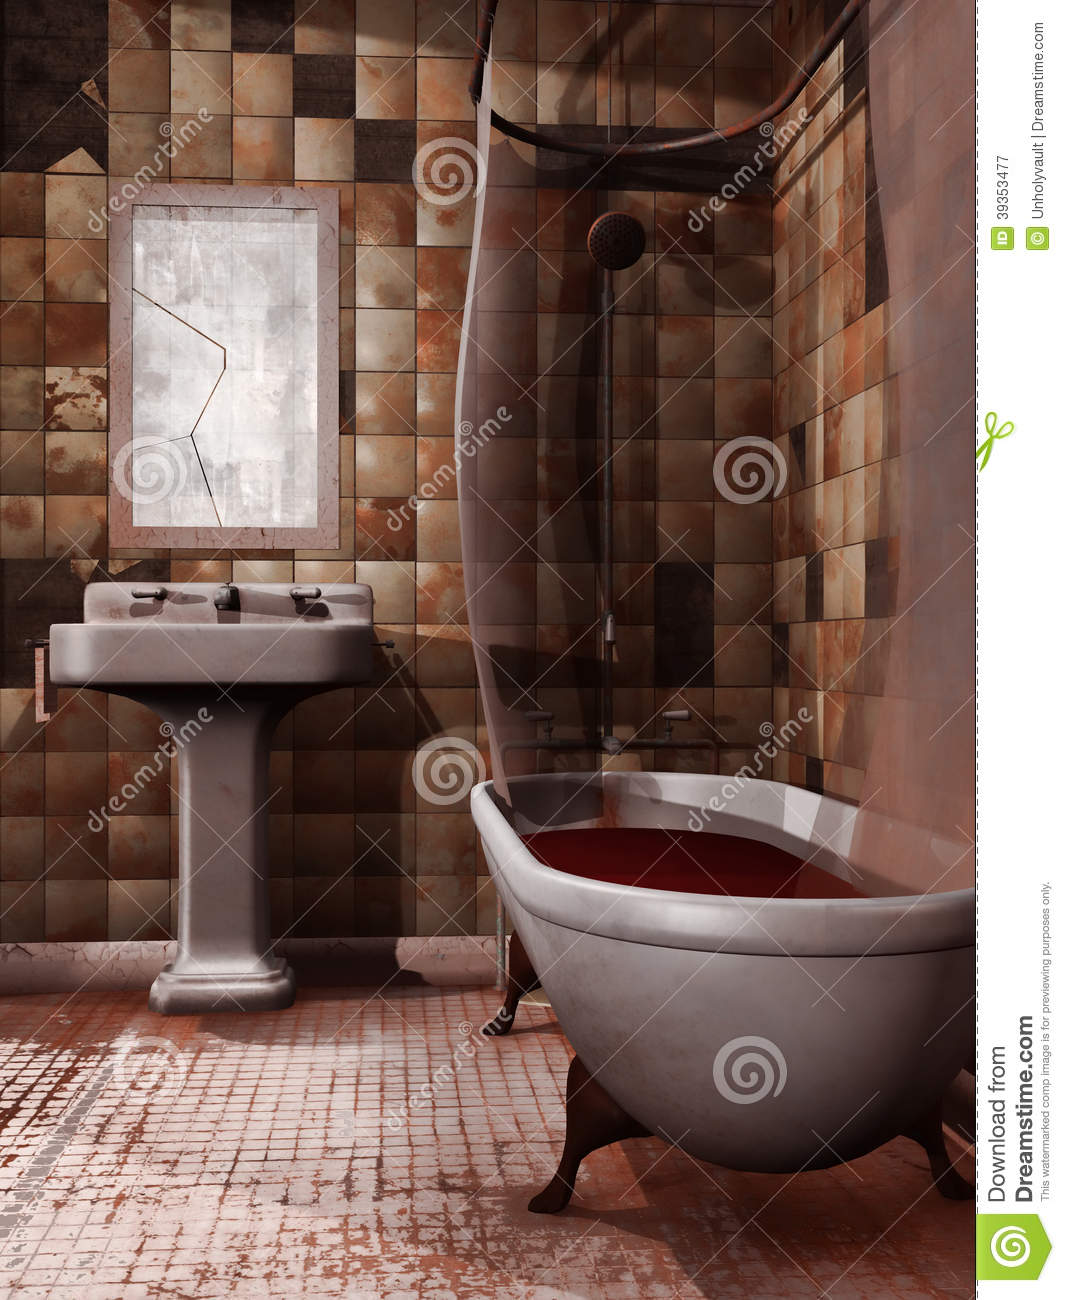 Broken Bathroom Mirror Spooky Bathroom Stock Illustration Image 39353477